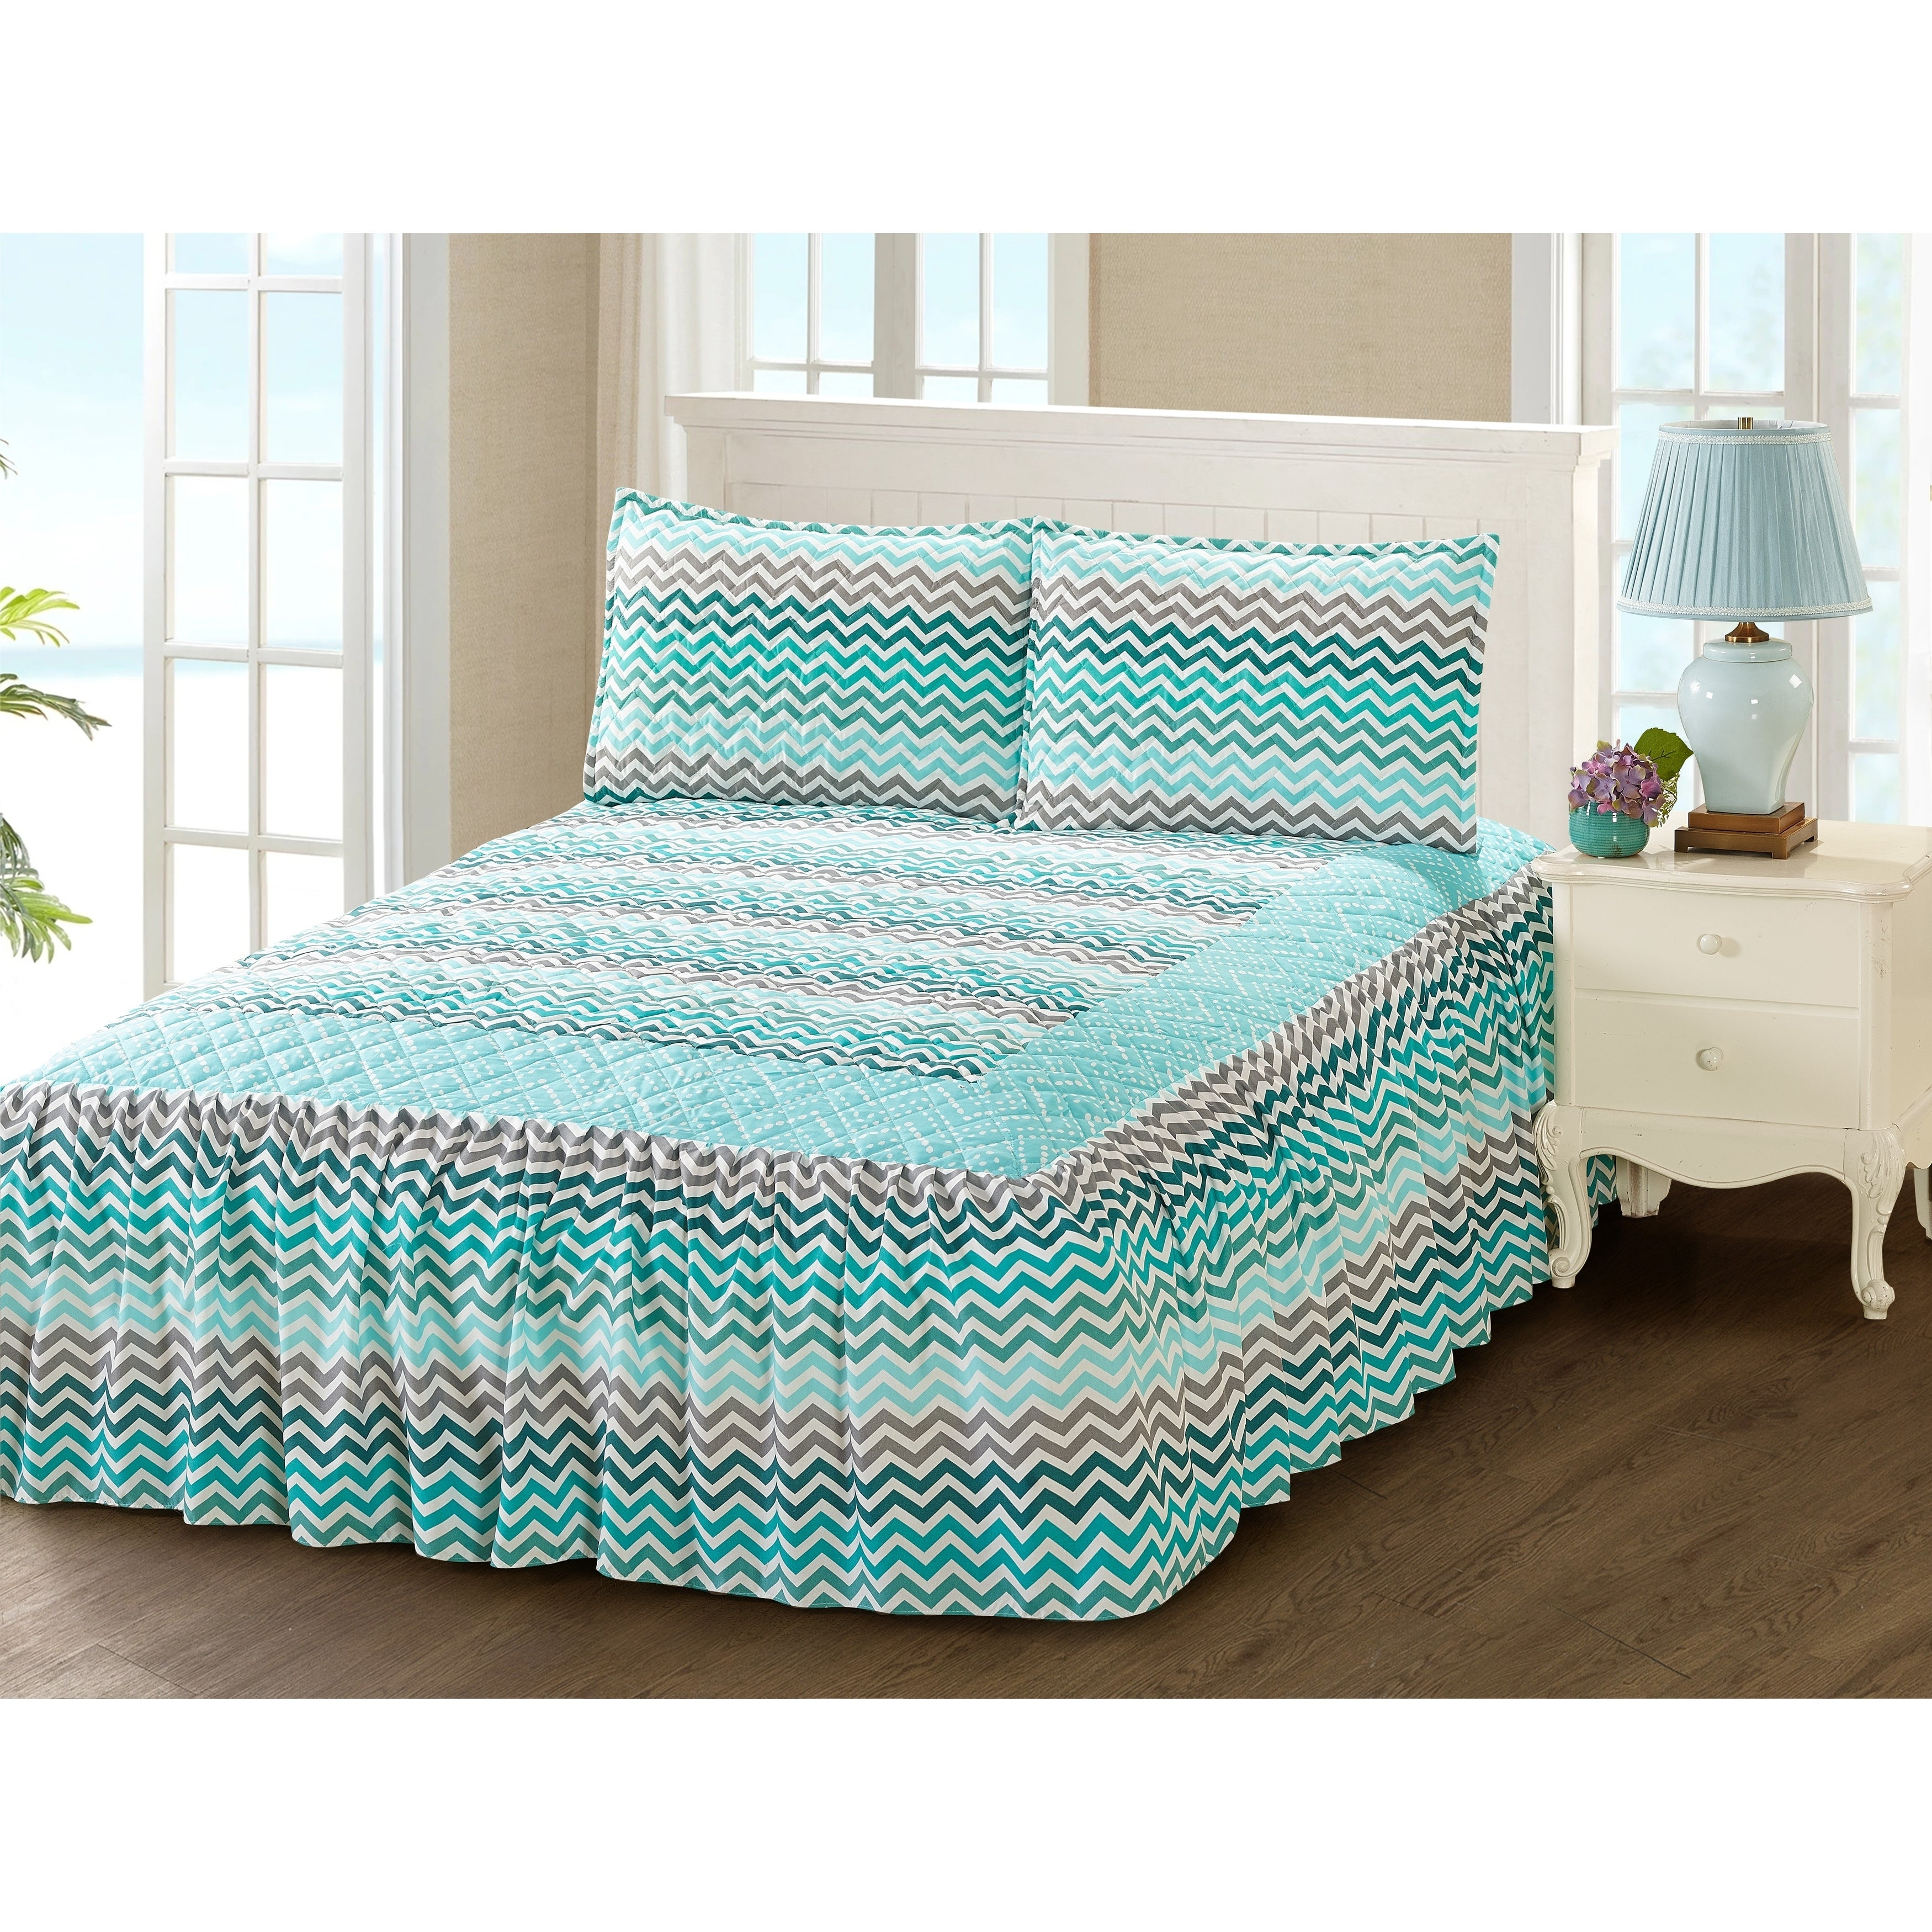 Khloe 3 Piece Bedspread Set With Attached Bed Skirt Aqua Zig Zag Multi Color Fl